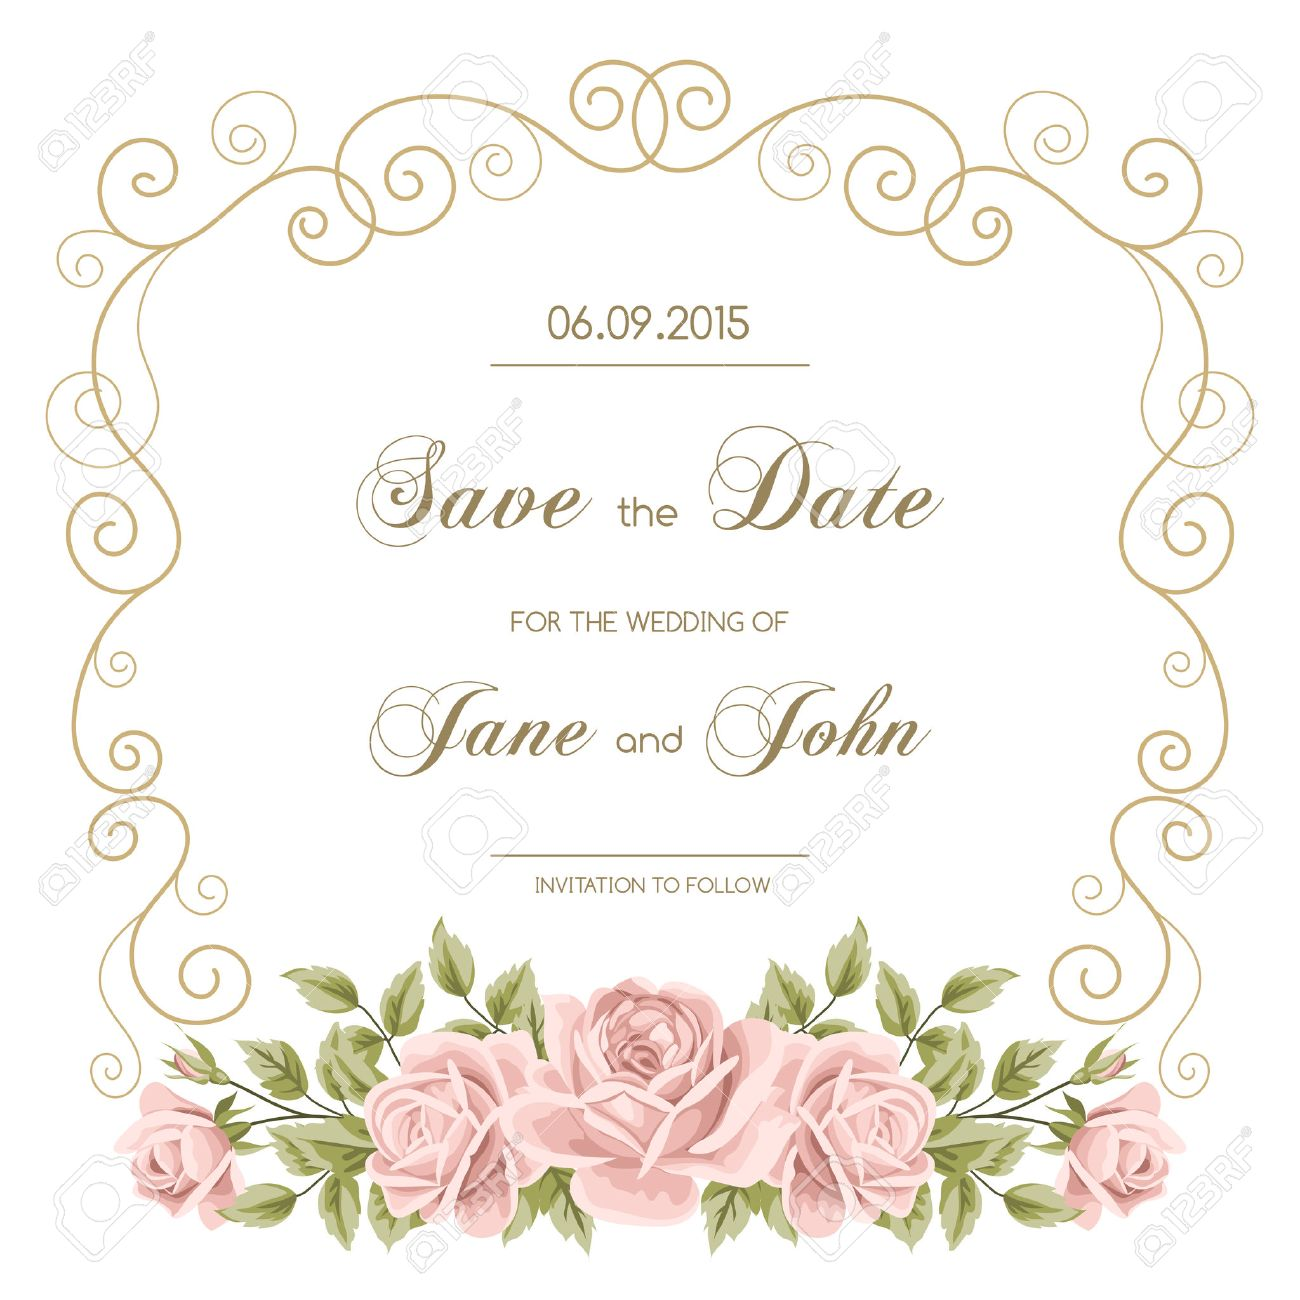 Vintage Wedding Invitation With Roses. Invitation Template With ...